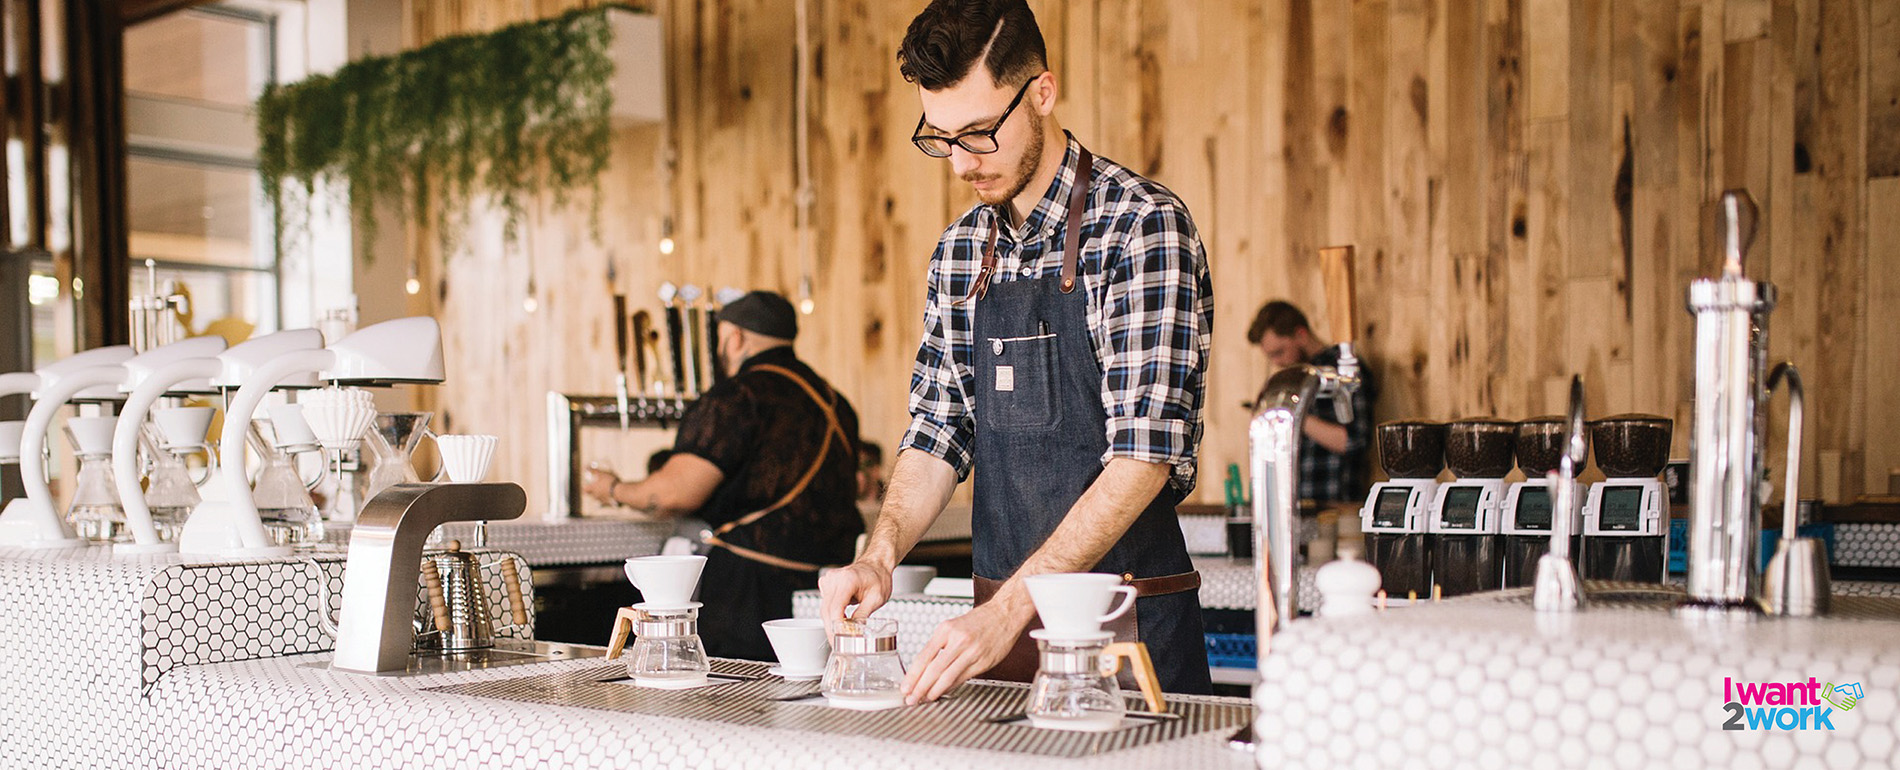 why you should work in hospitality barista making a coffee